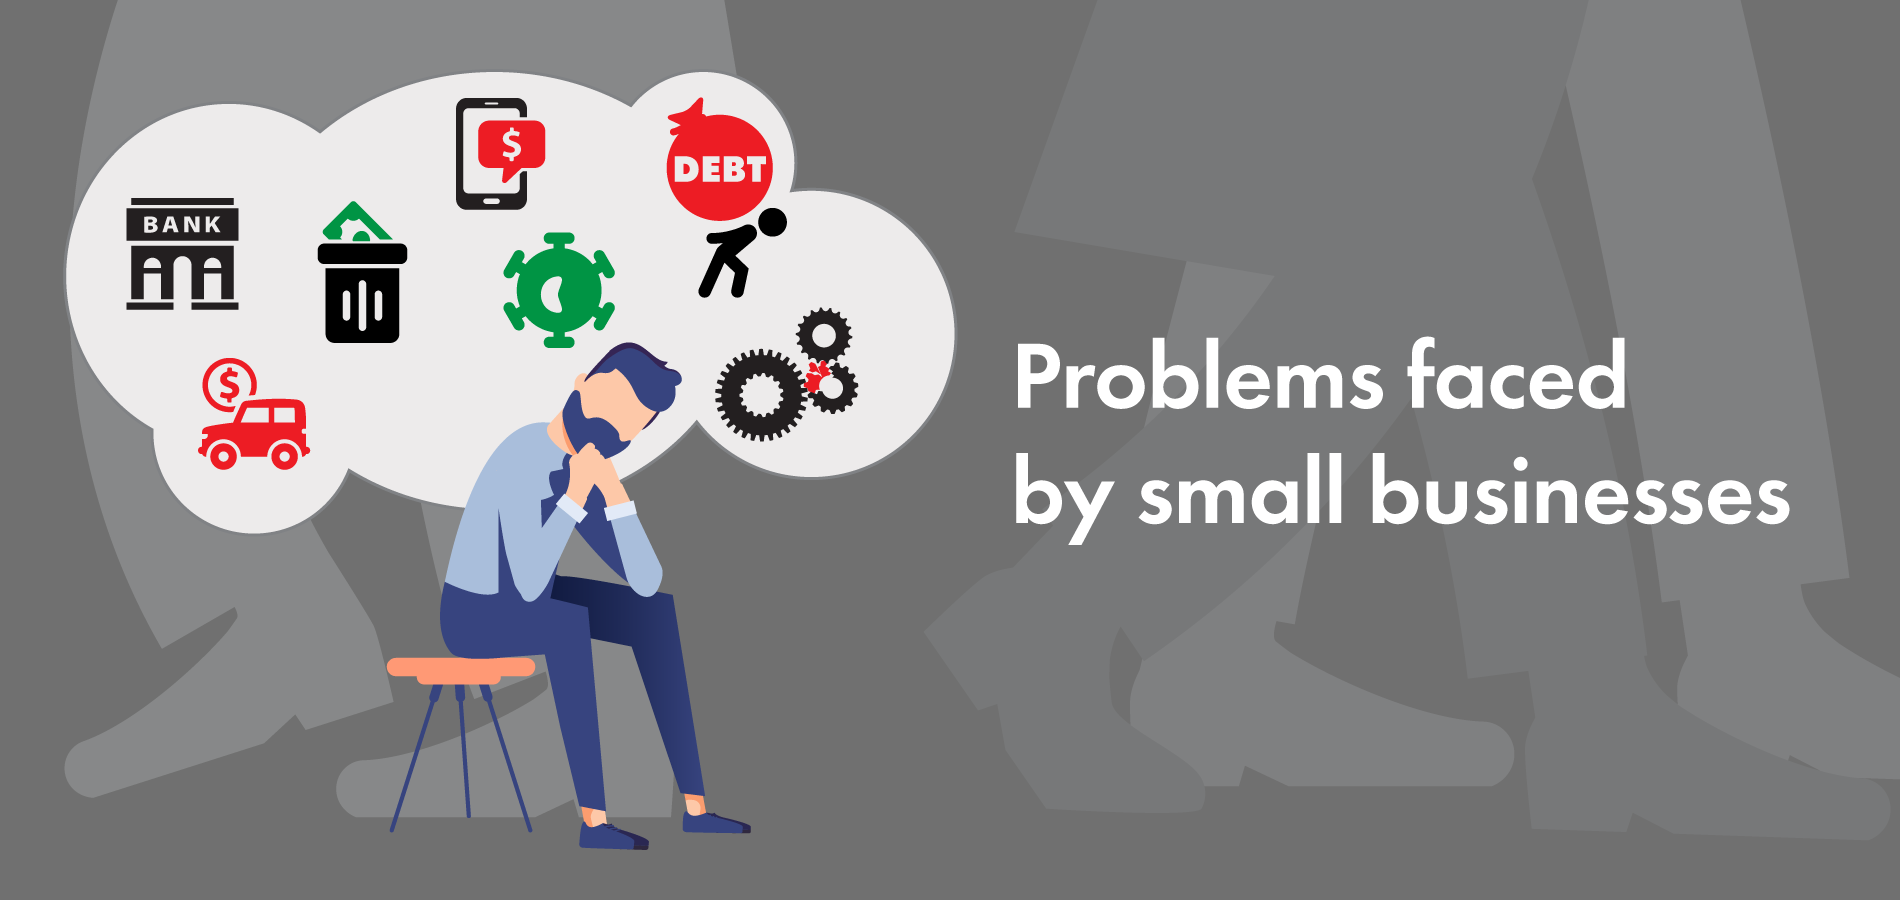 6 common problems faced by small businesses